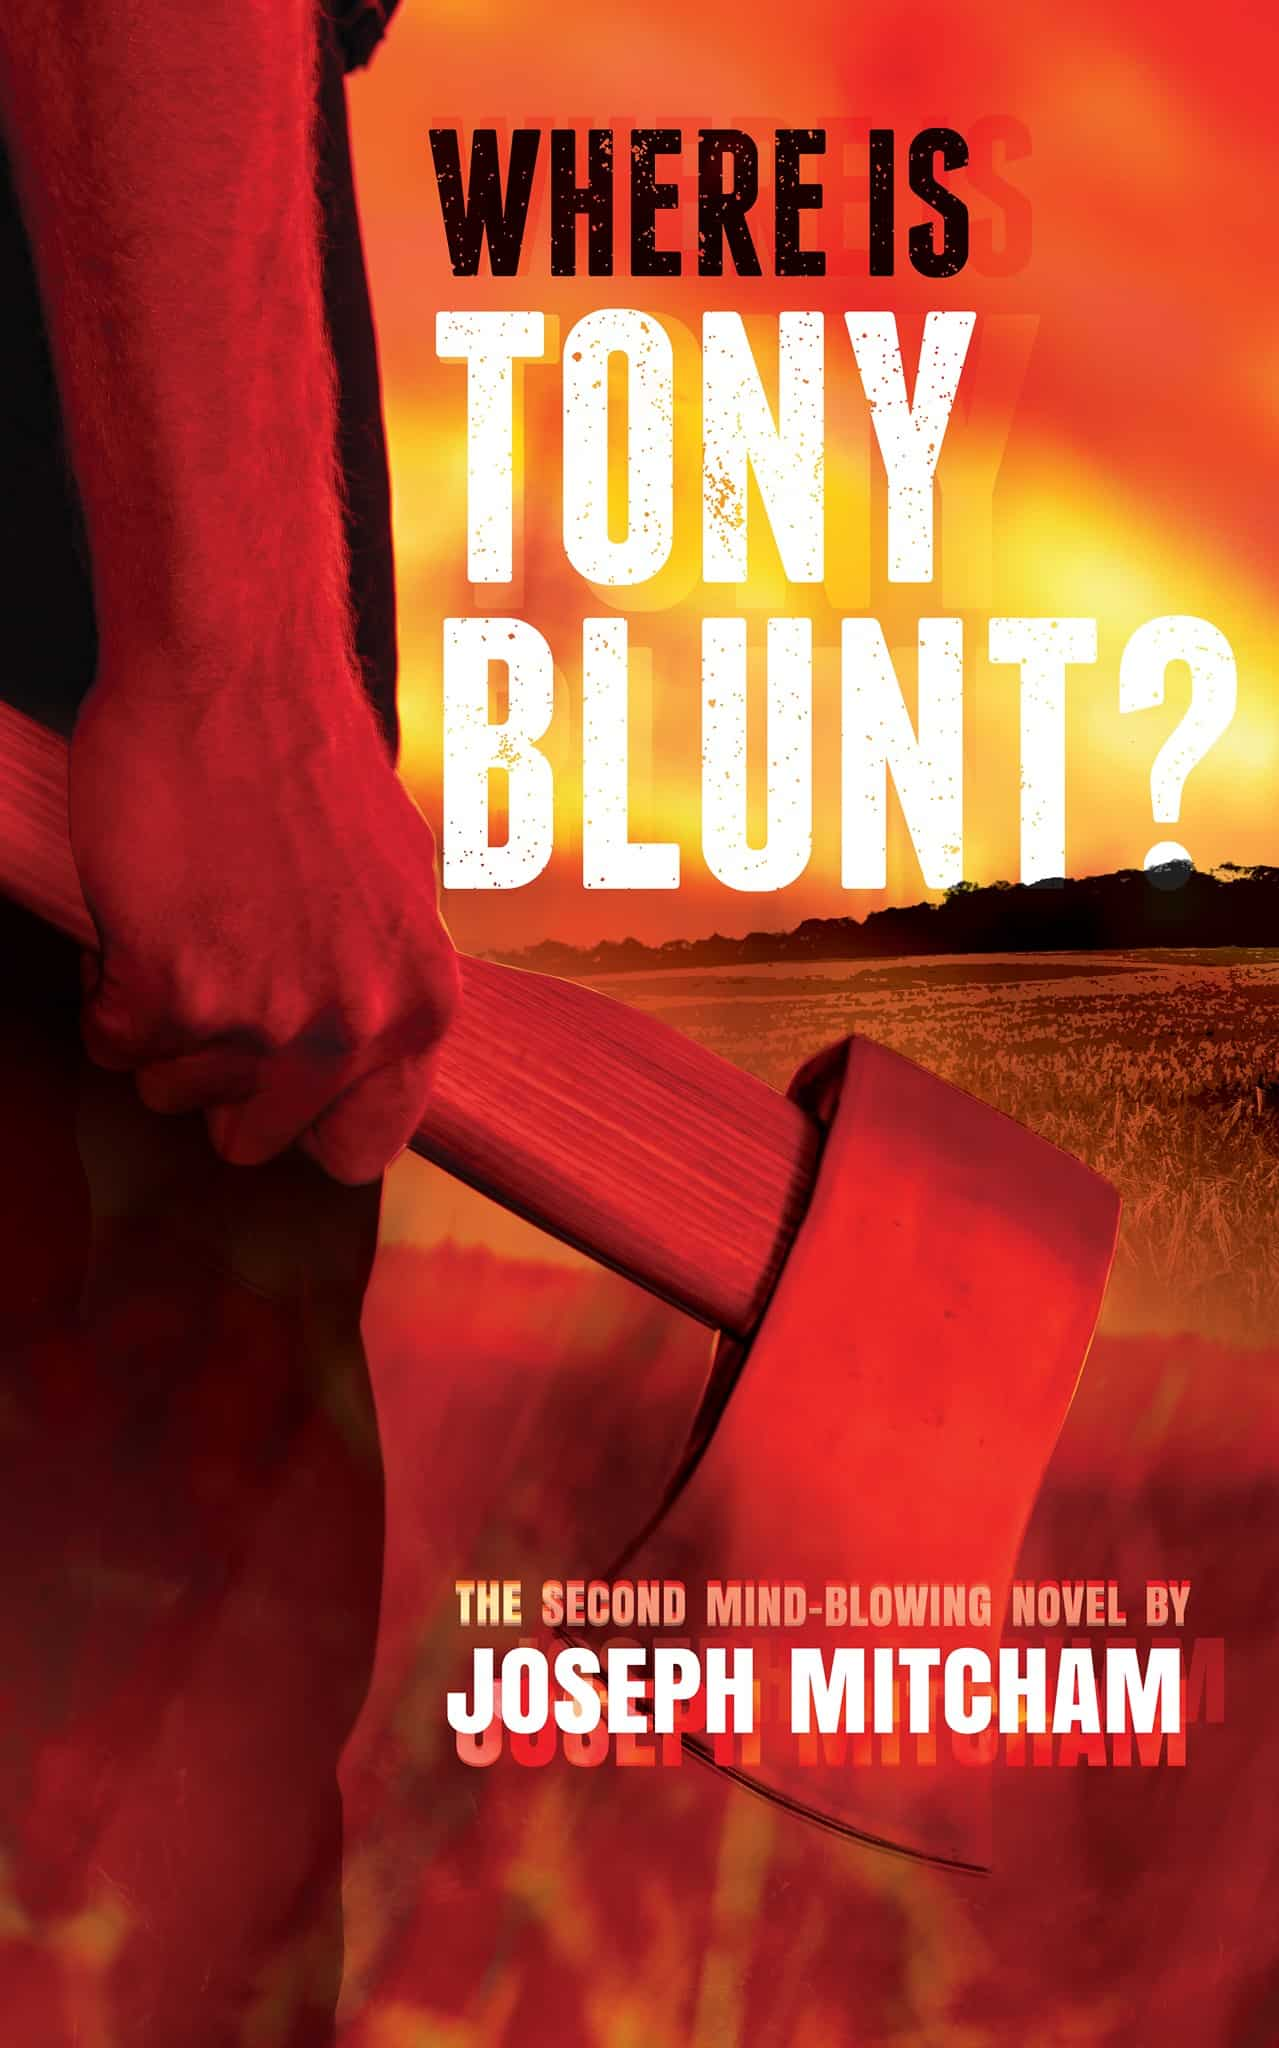 Where is Tony Blunt is part of the atrocities series by Joseph Mitcham. Alex and his multi-agency team are looking to stop a UK terrorist attack by one of their own.